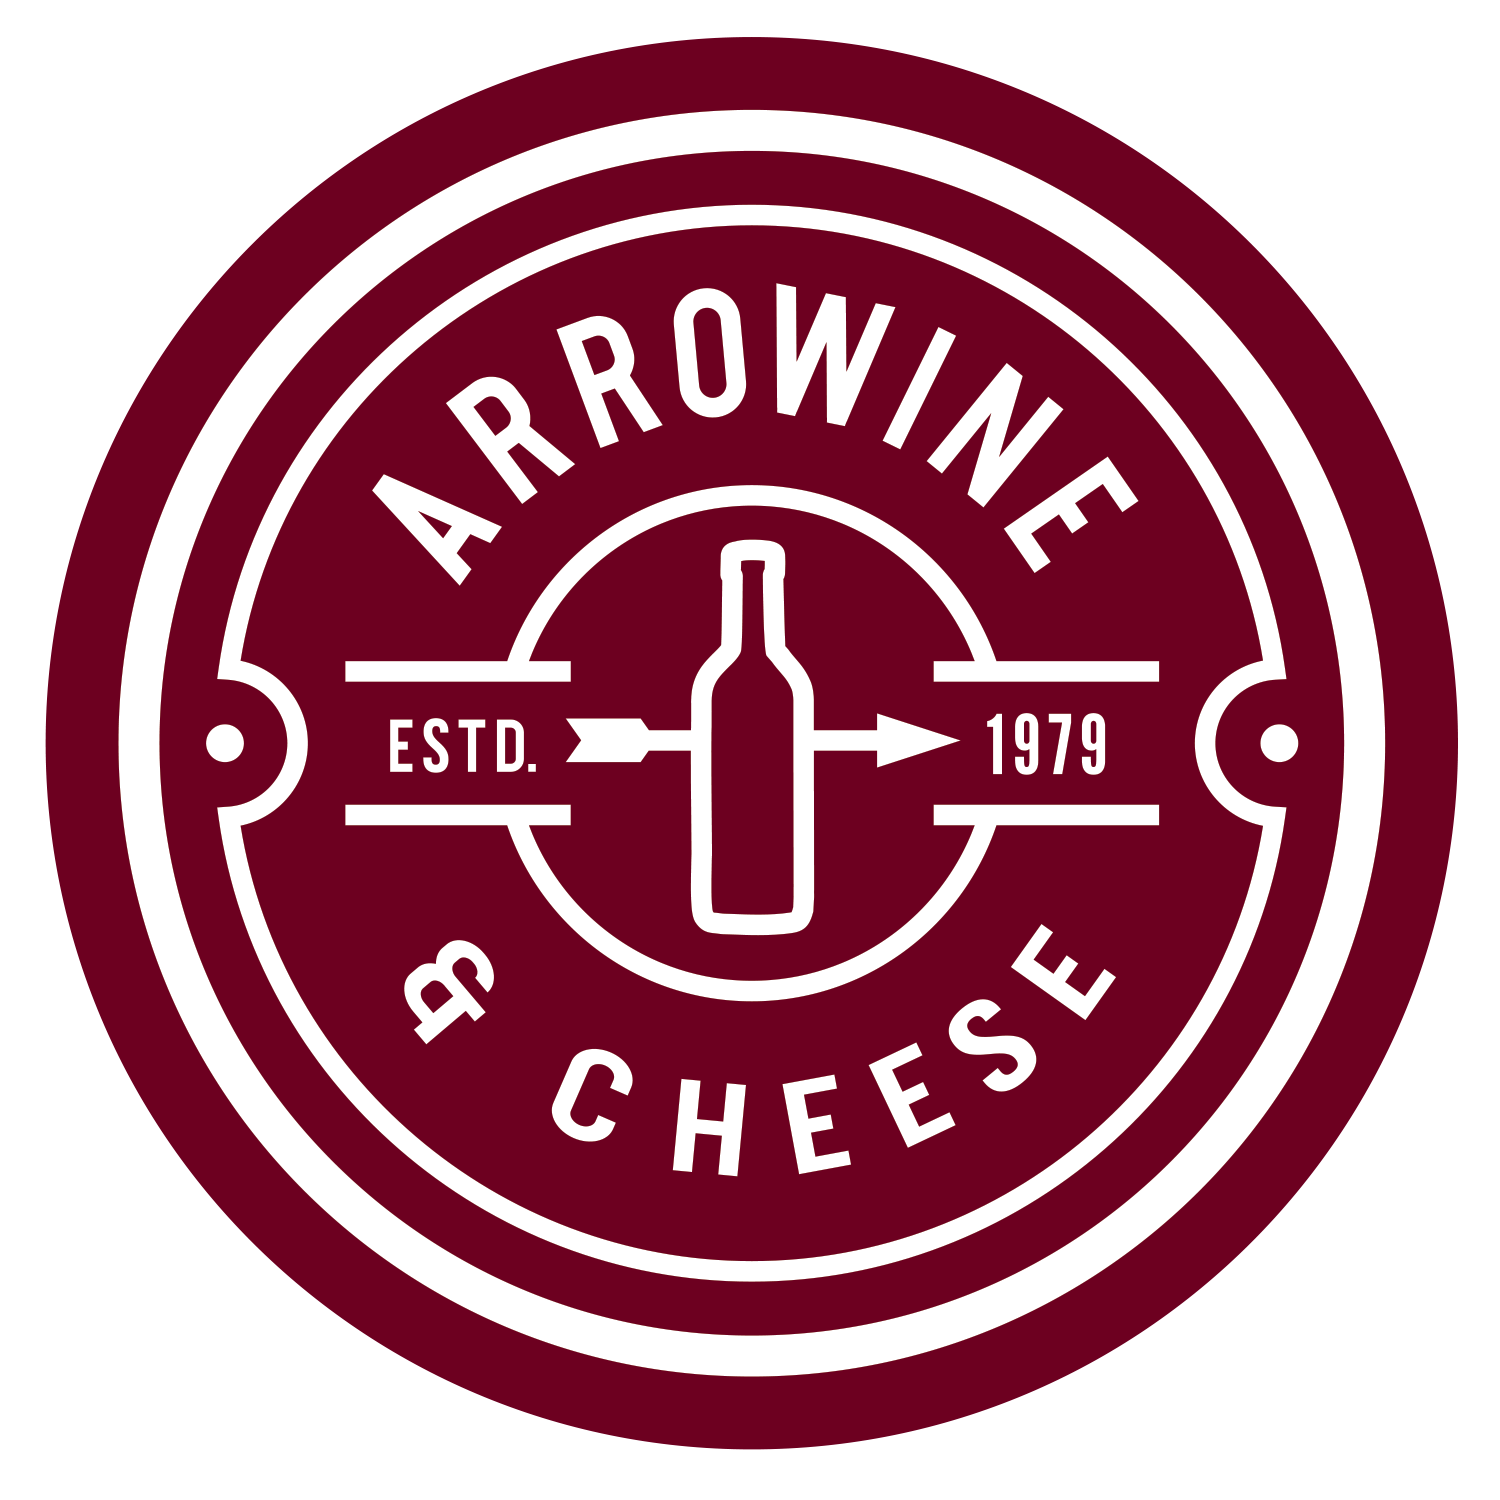 Arrowine & Cheese